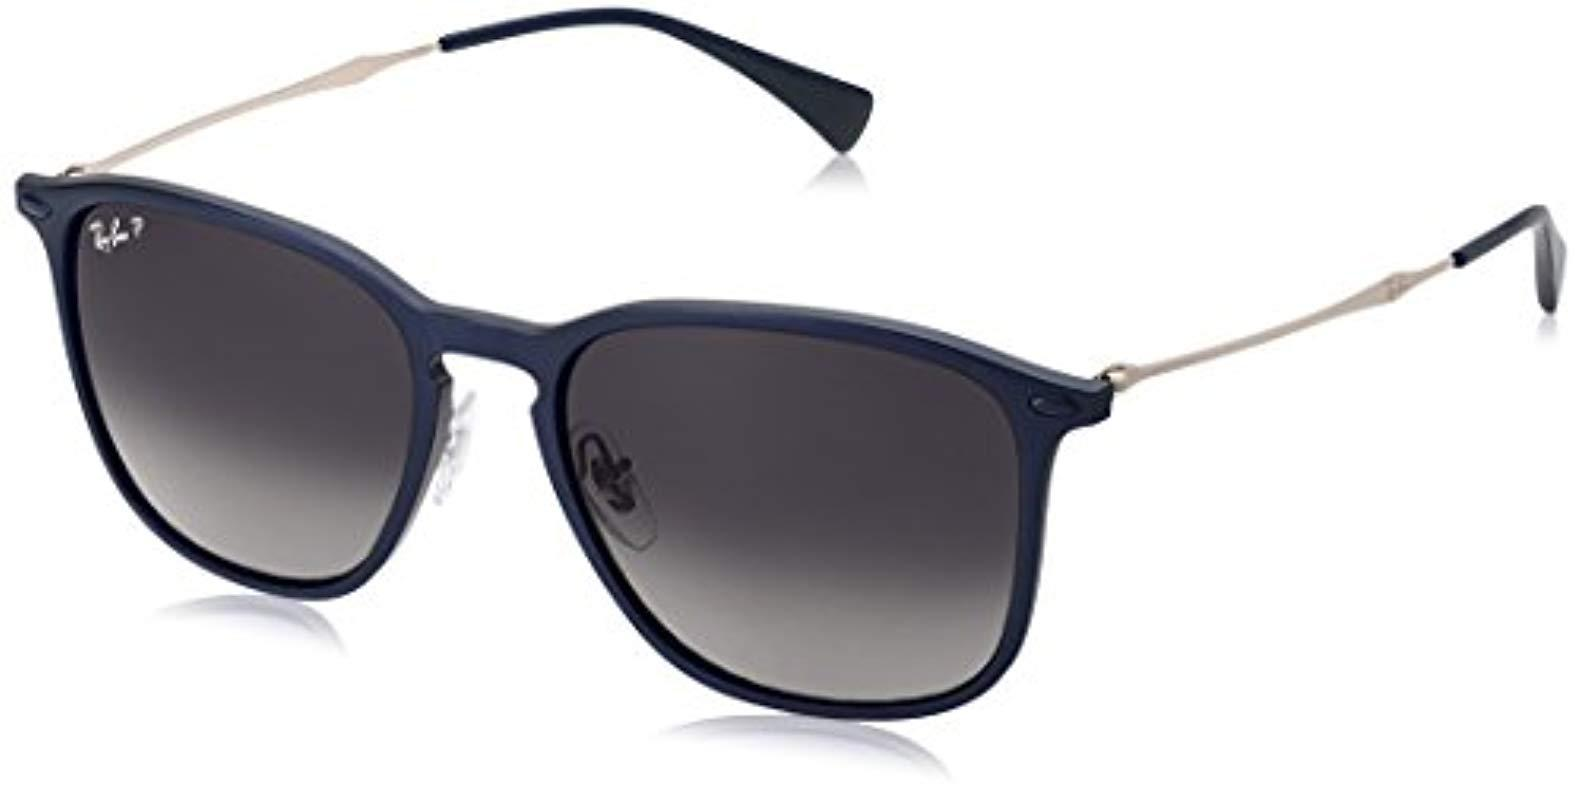 dd665127ca Lyst - Ray-Ban Rb8353 Sunglasses in Blue - Save 20%